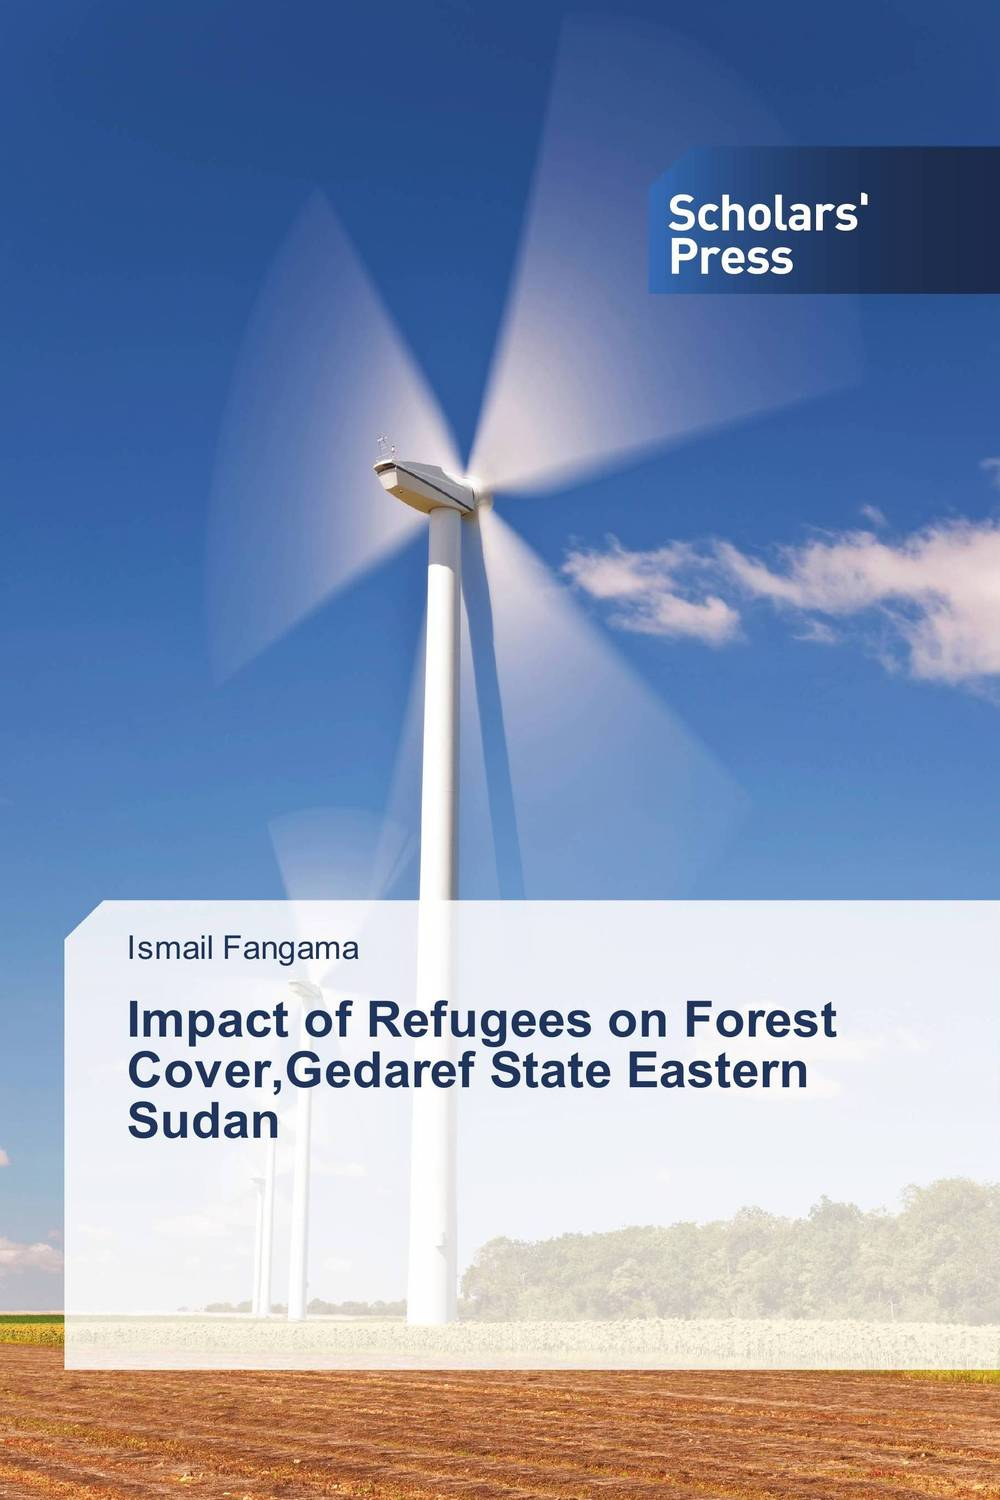 Impact of Refugees on Forest Cover,Gedaref State Eastern Sudan rd parslow parslow information technology for the eighties bcs 81